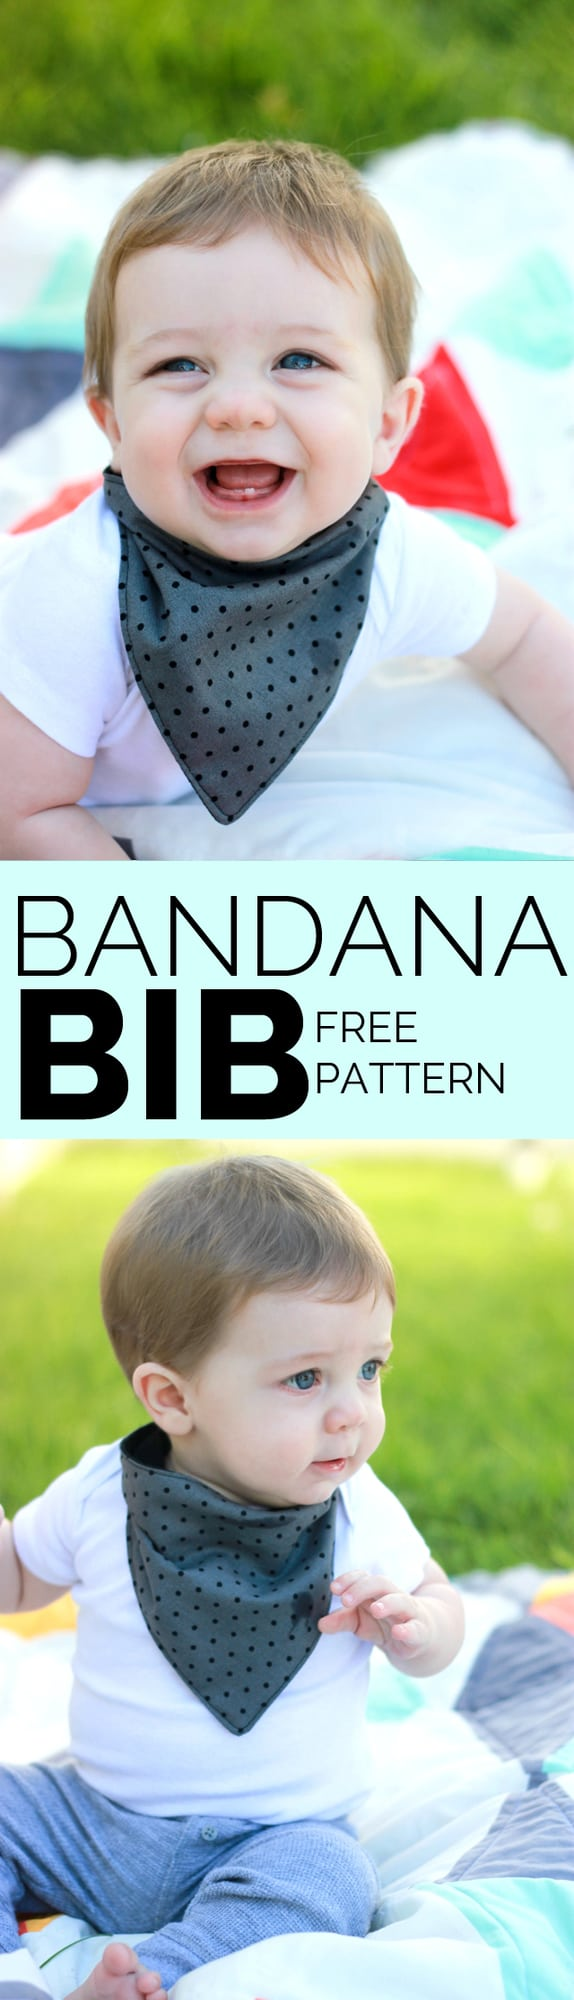 Bandana bib tutorial see kate sew free bandana bib pattern bandana bib tutorial how to make a bandana bib baditri Images